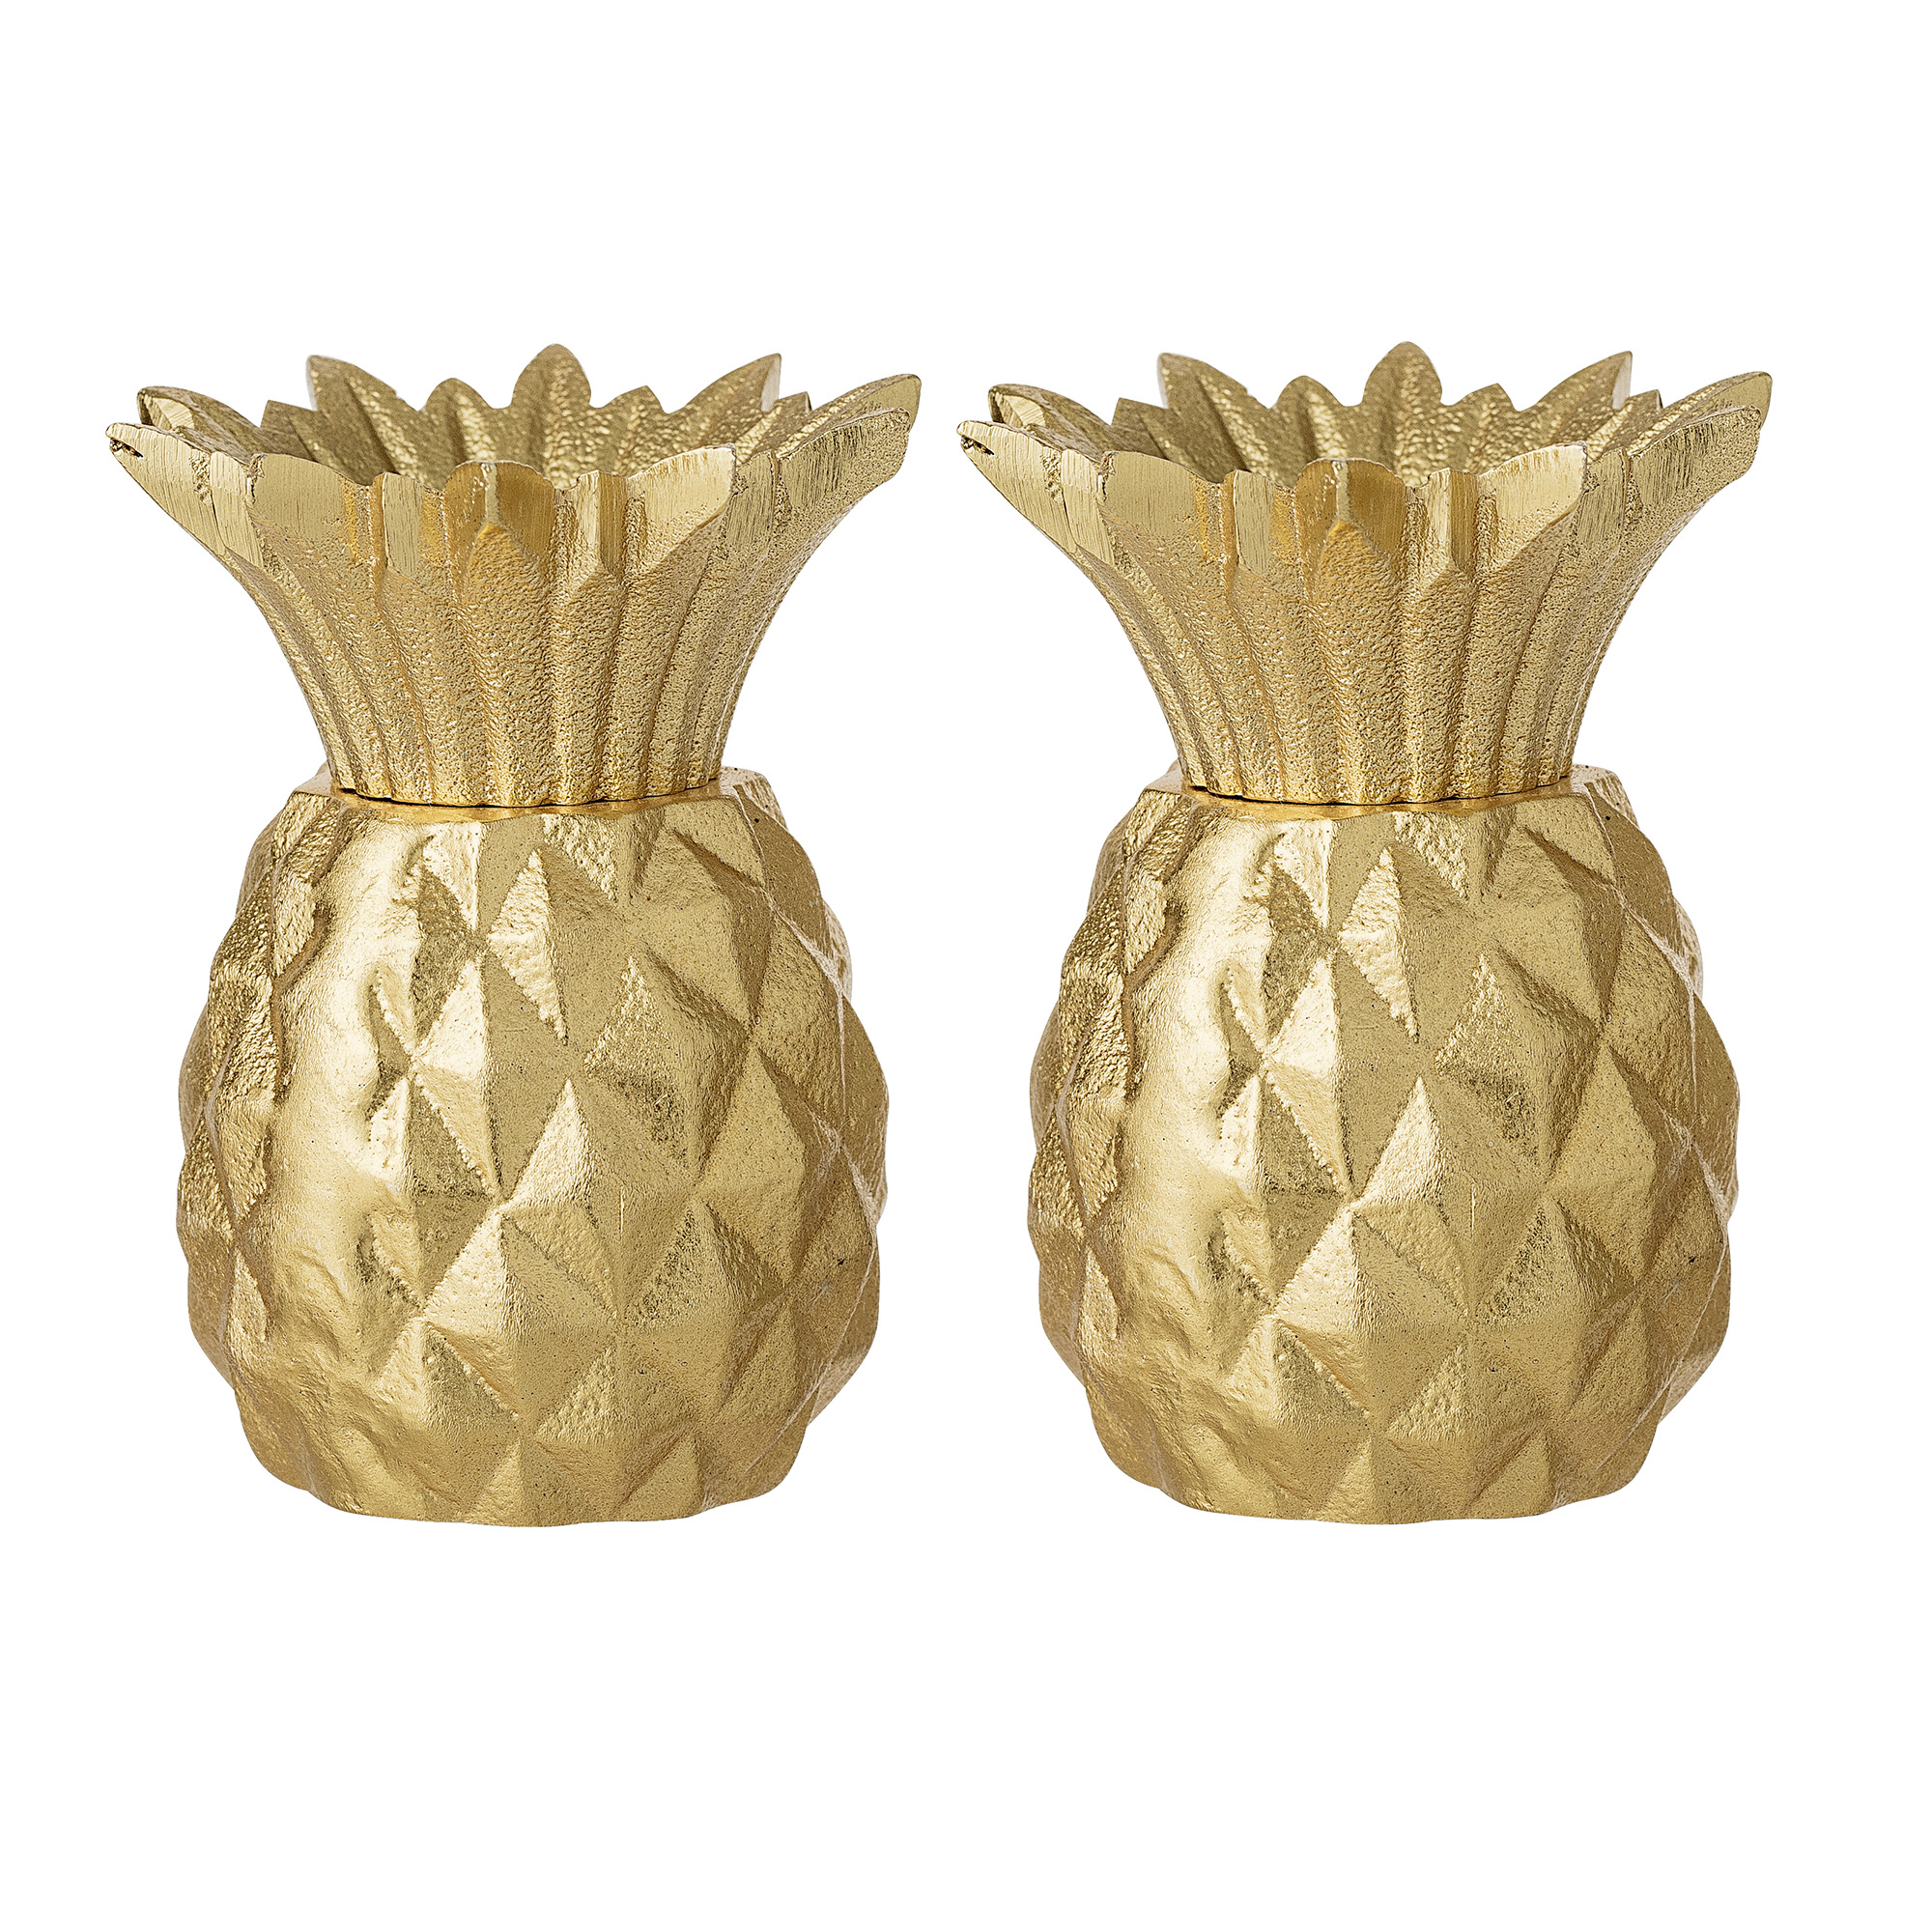 #019   Gold Pineapple Salt + Pepper Shakers     Hire Price per set £5.30 Minimum Order 3 sets  Current Stock Available 12 sets